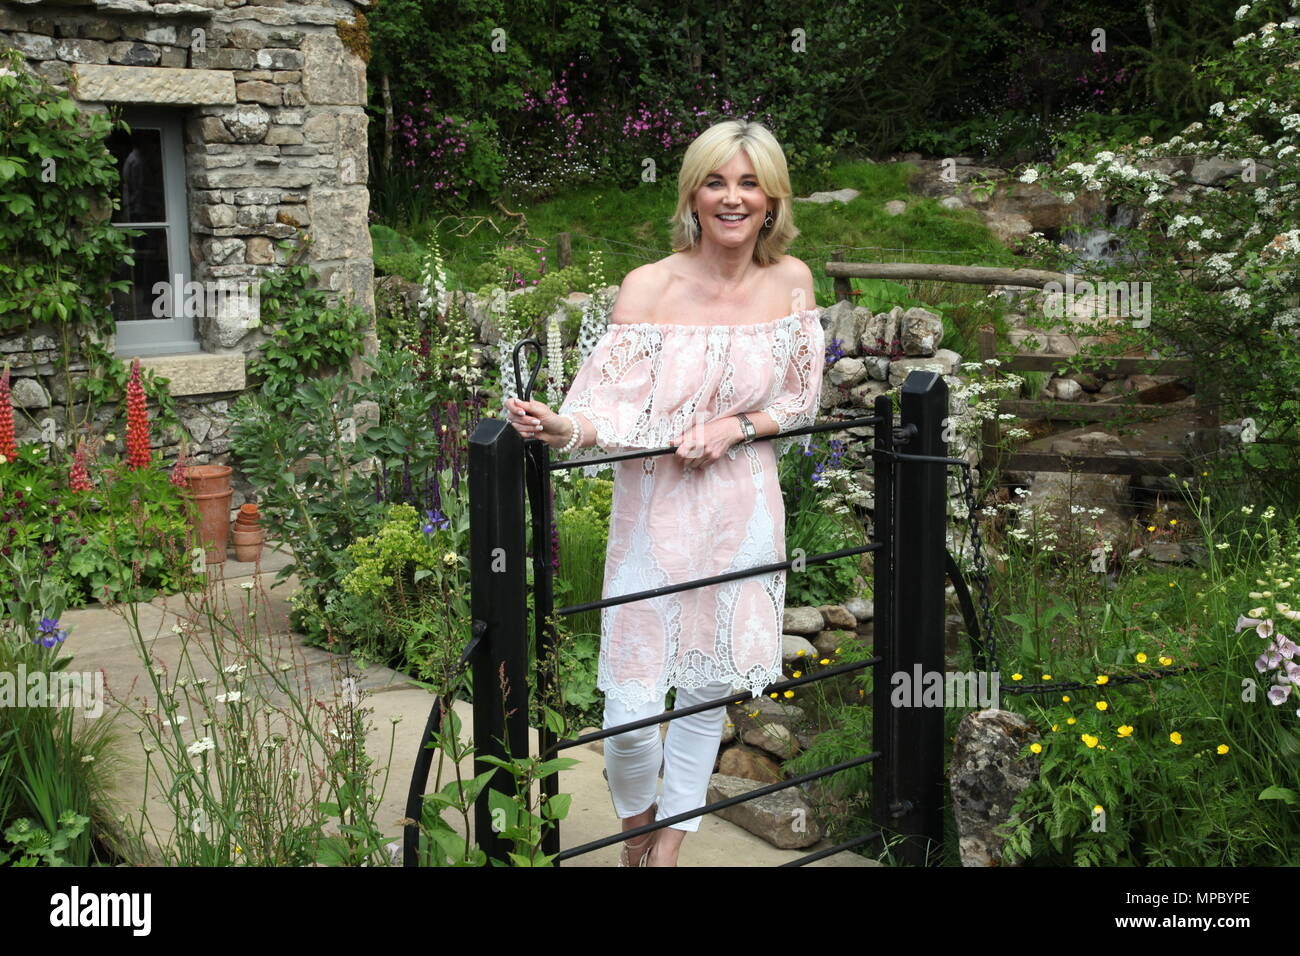 Chelsea, London, UK. 21st May, 2018. Chelsea, London, UK. 21st May 2018. Anthea Turner on the Welcome to Yorkshire garden at Chelsea Flower Show 2018, designed by Mark Gregory for Landformconsultants.co.uk Credit: Jenny Lilly/Alamy Live News - Stock Image